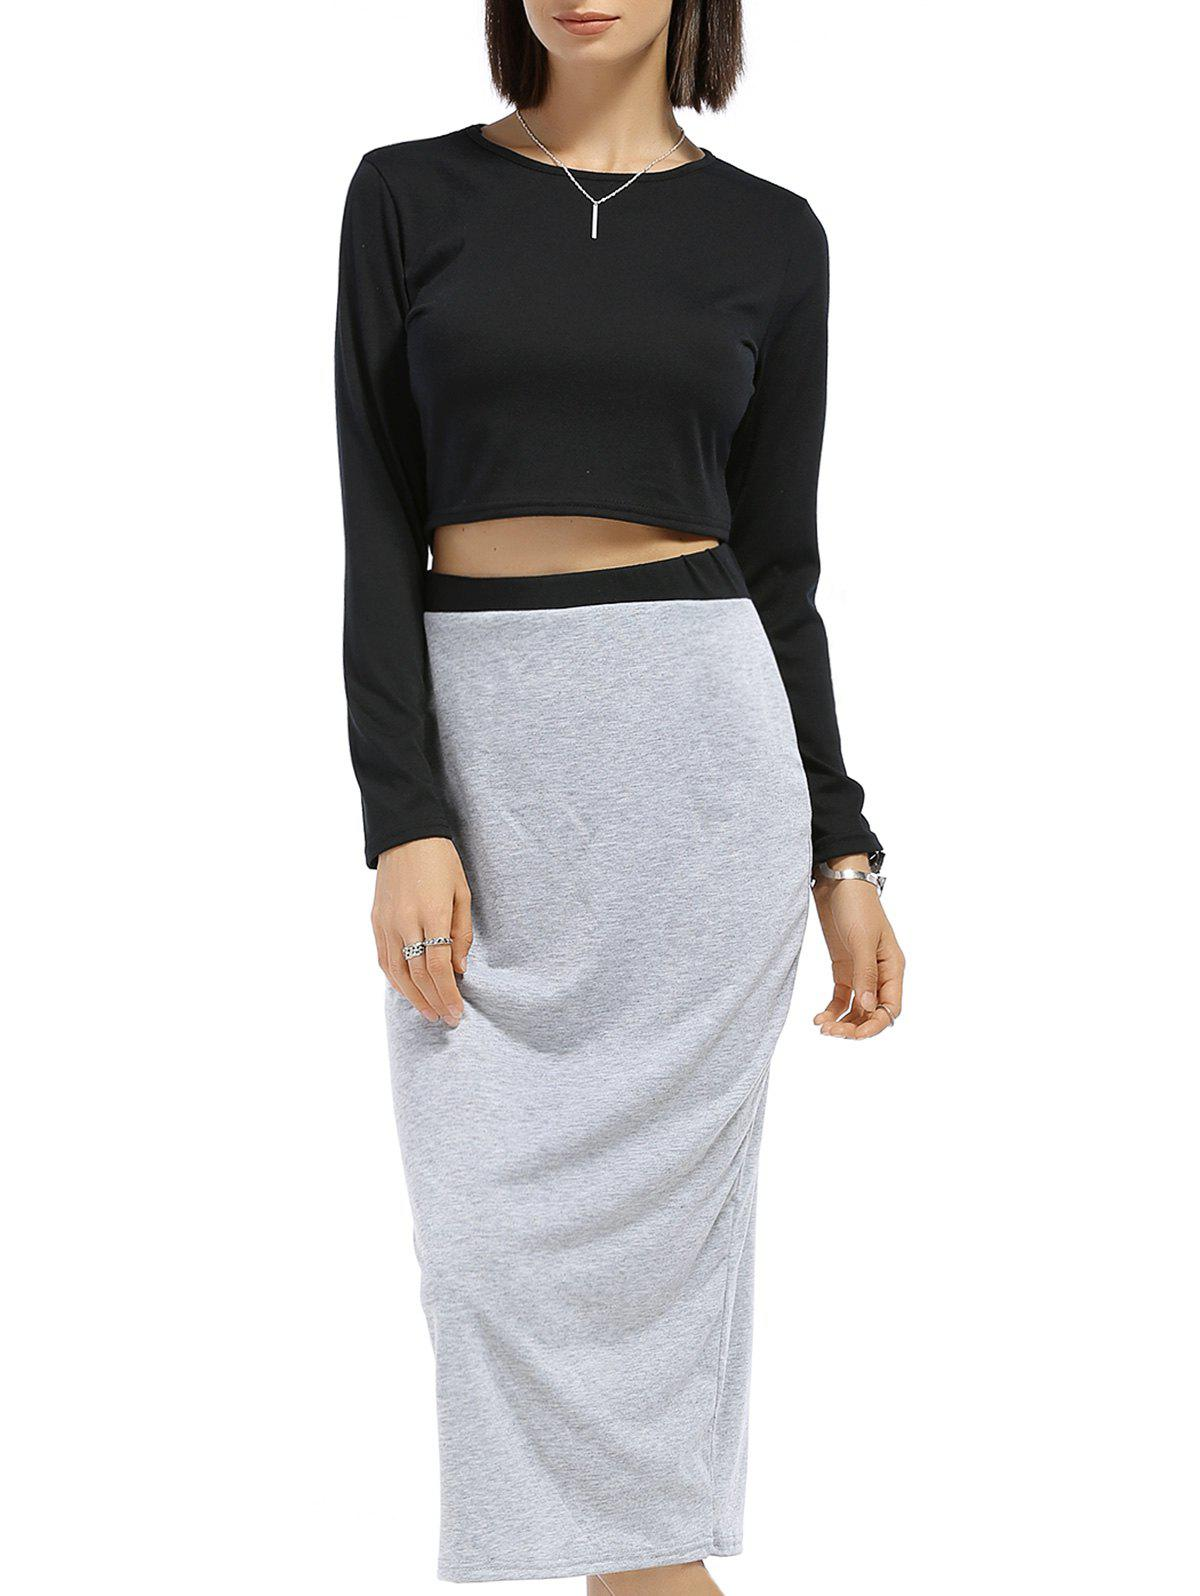 Round Neck Long Sleeve Solid Color Crop Top Spliced Skirt Twinset 119227002